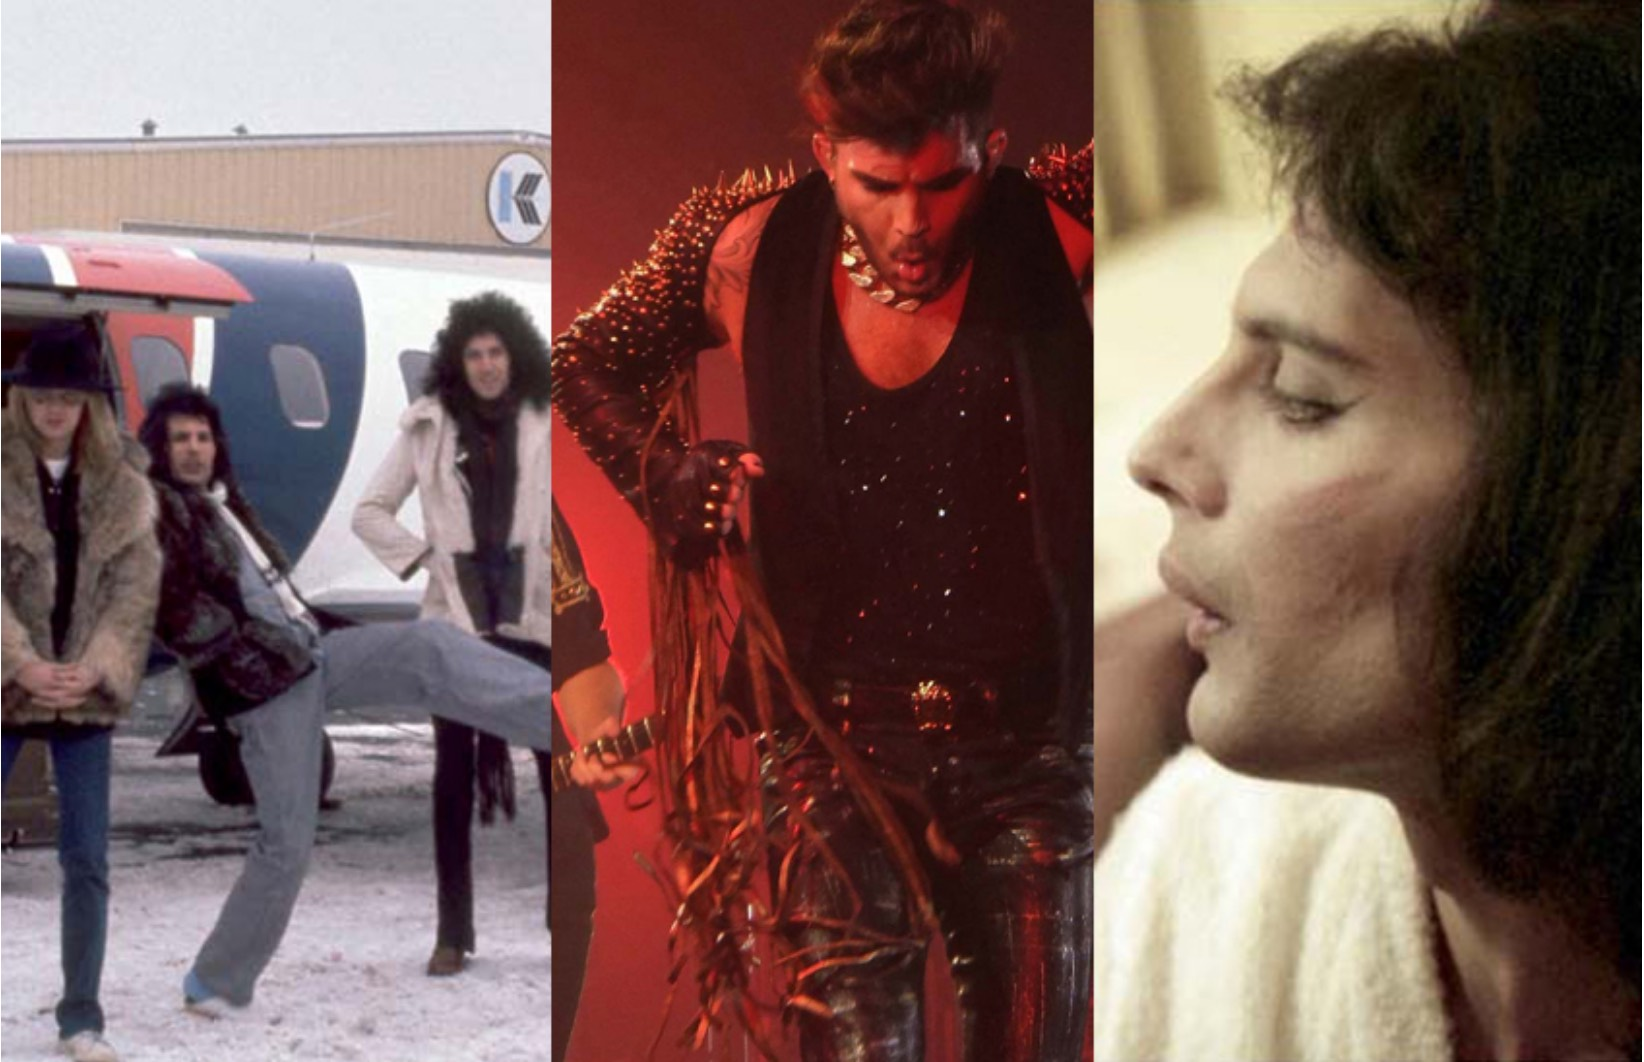 3 photos - Queen, Adam, Freddie